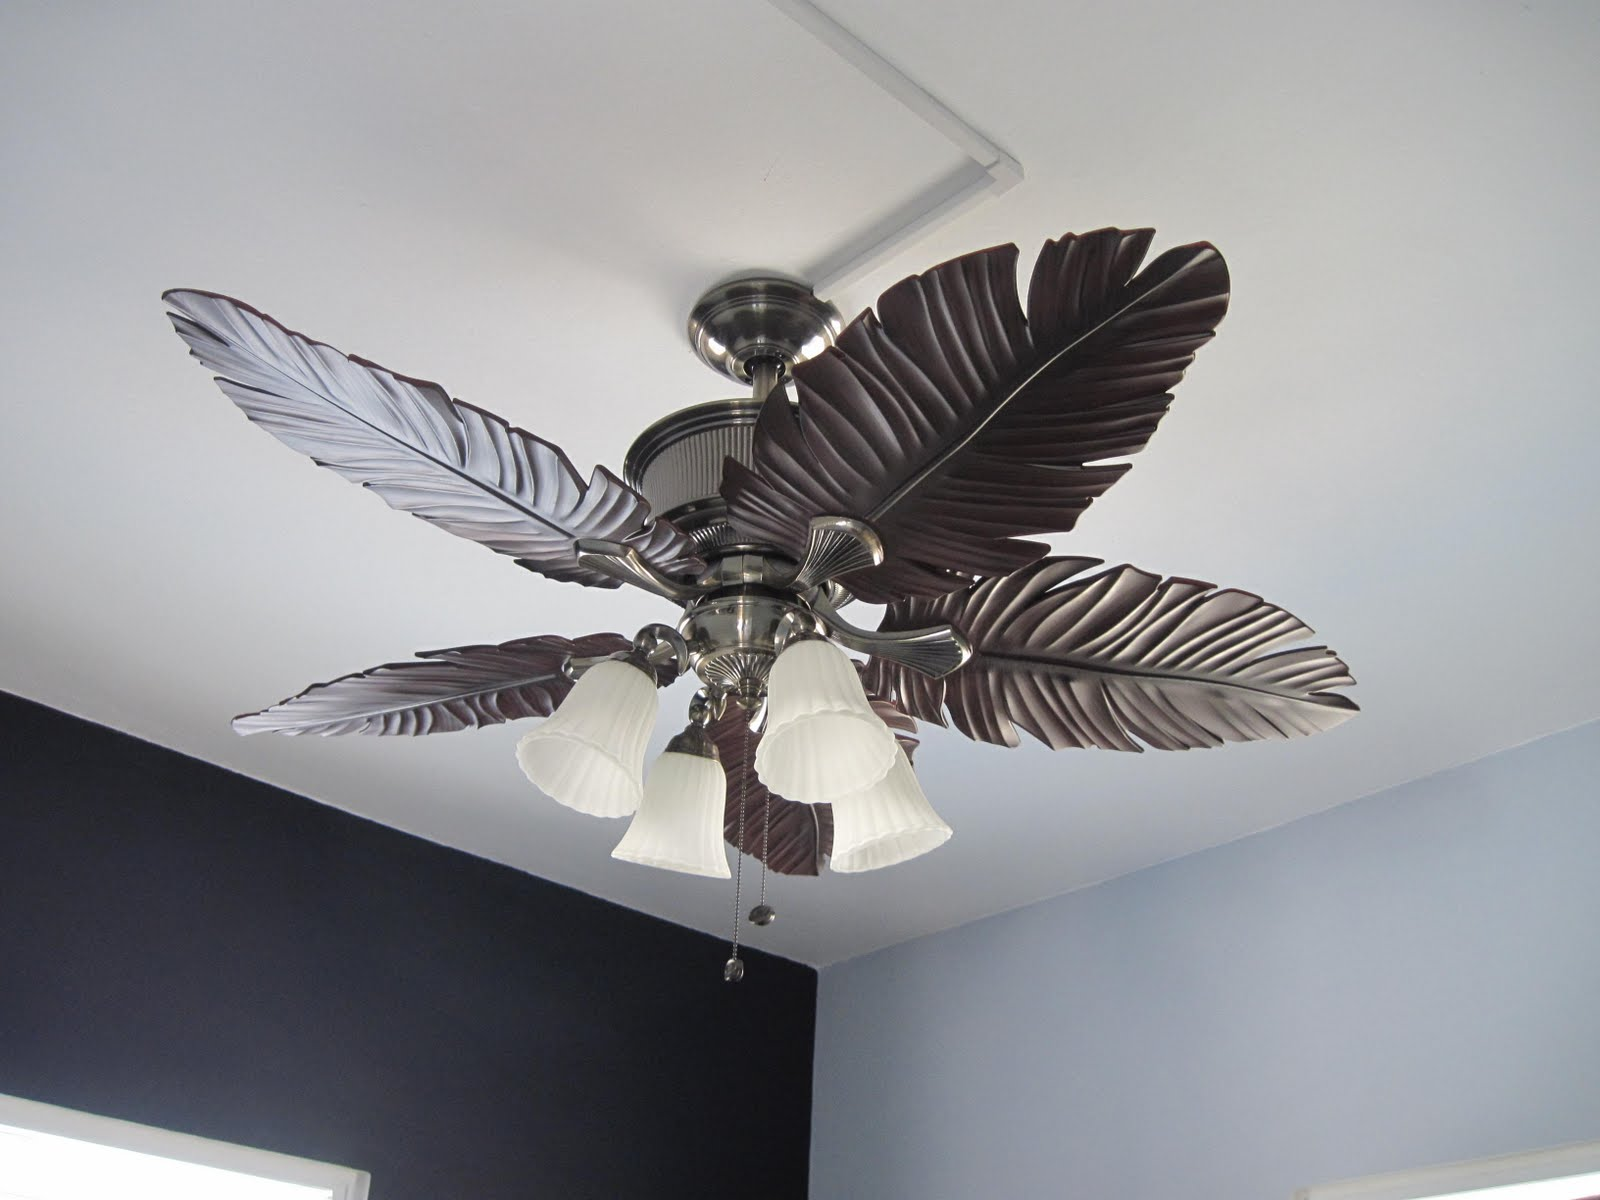 original: fj ceiling fan wires brown purple gray compulsive yawning ...